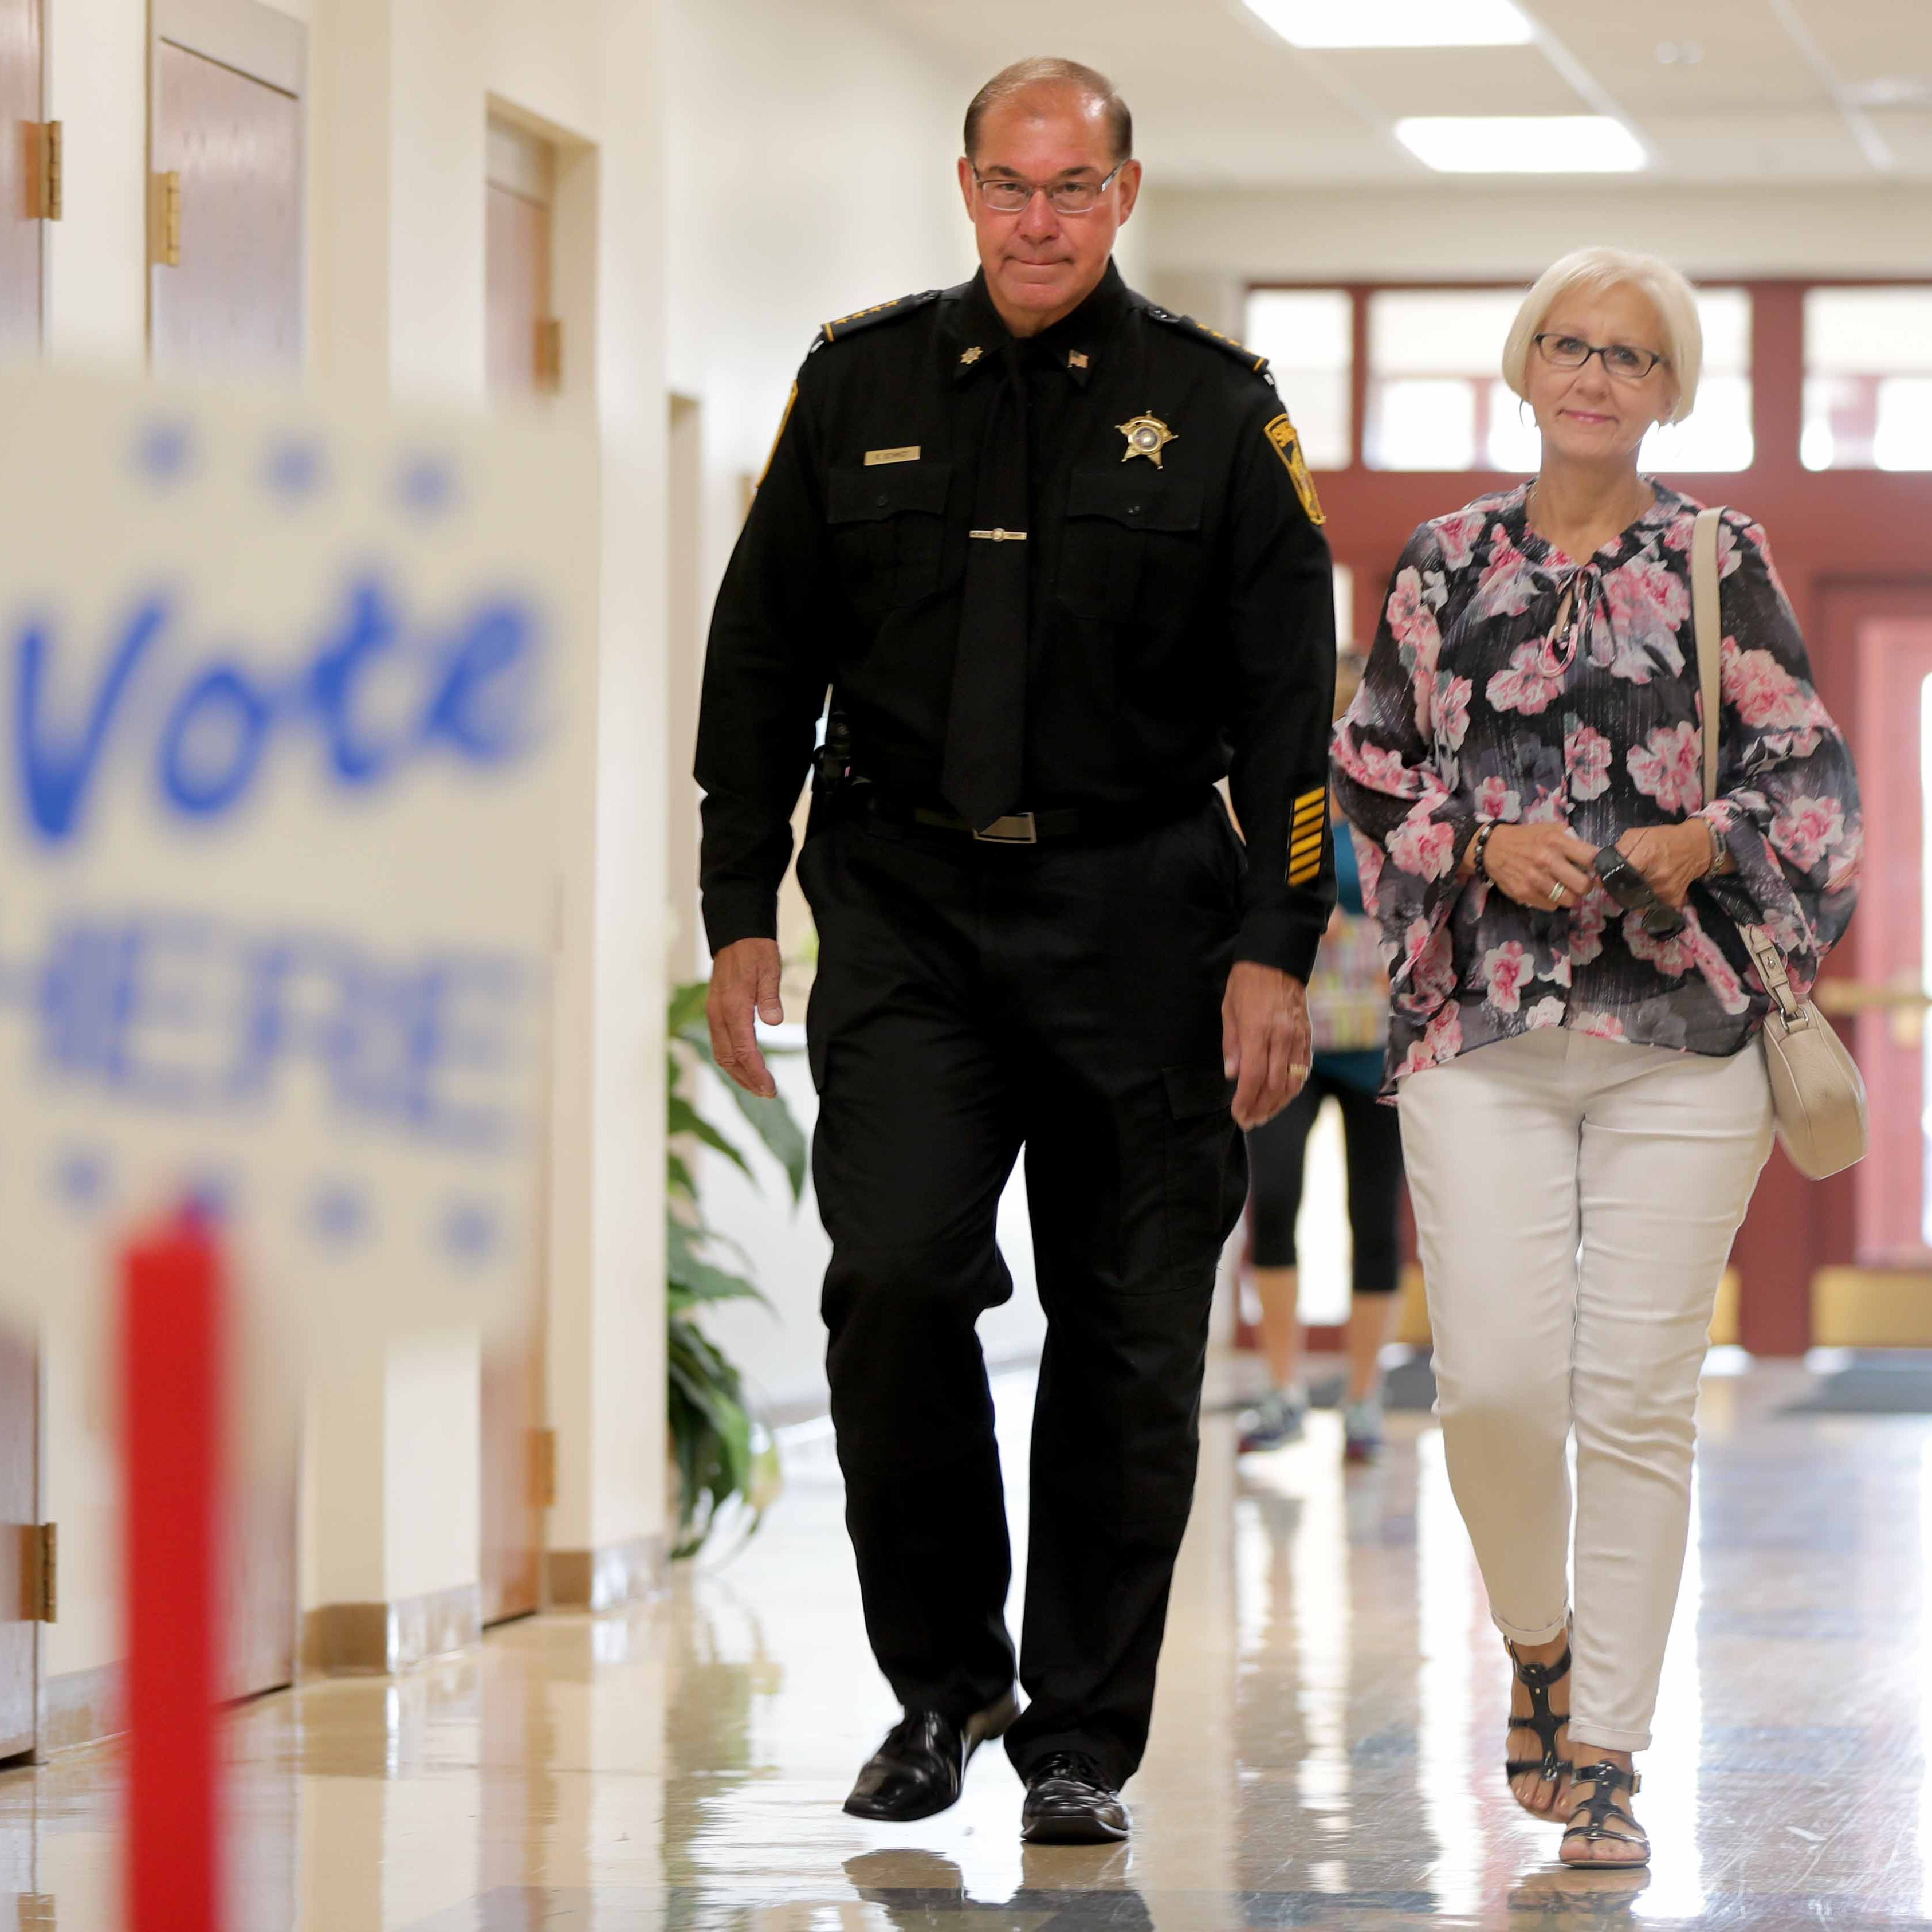 Bice: Acting Sheriff Schmidt could take a lump-sum, backdrop payment of more than $810,000